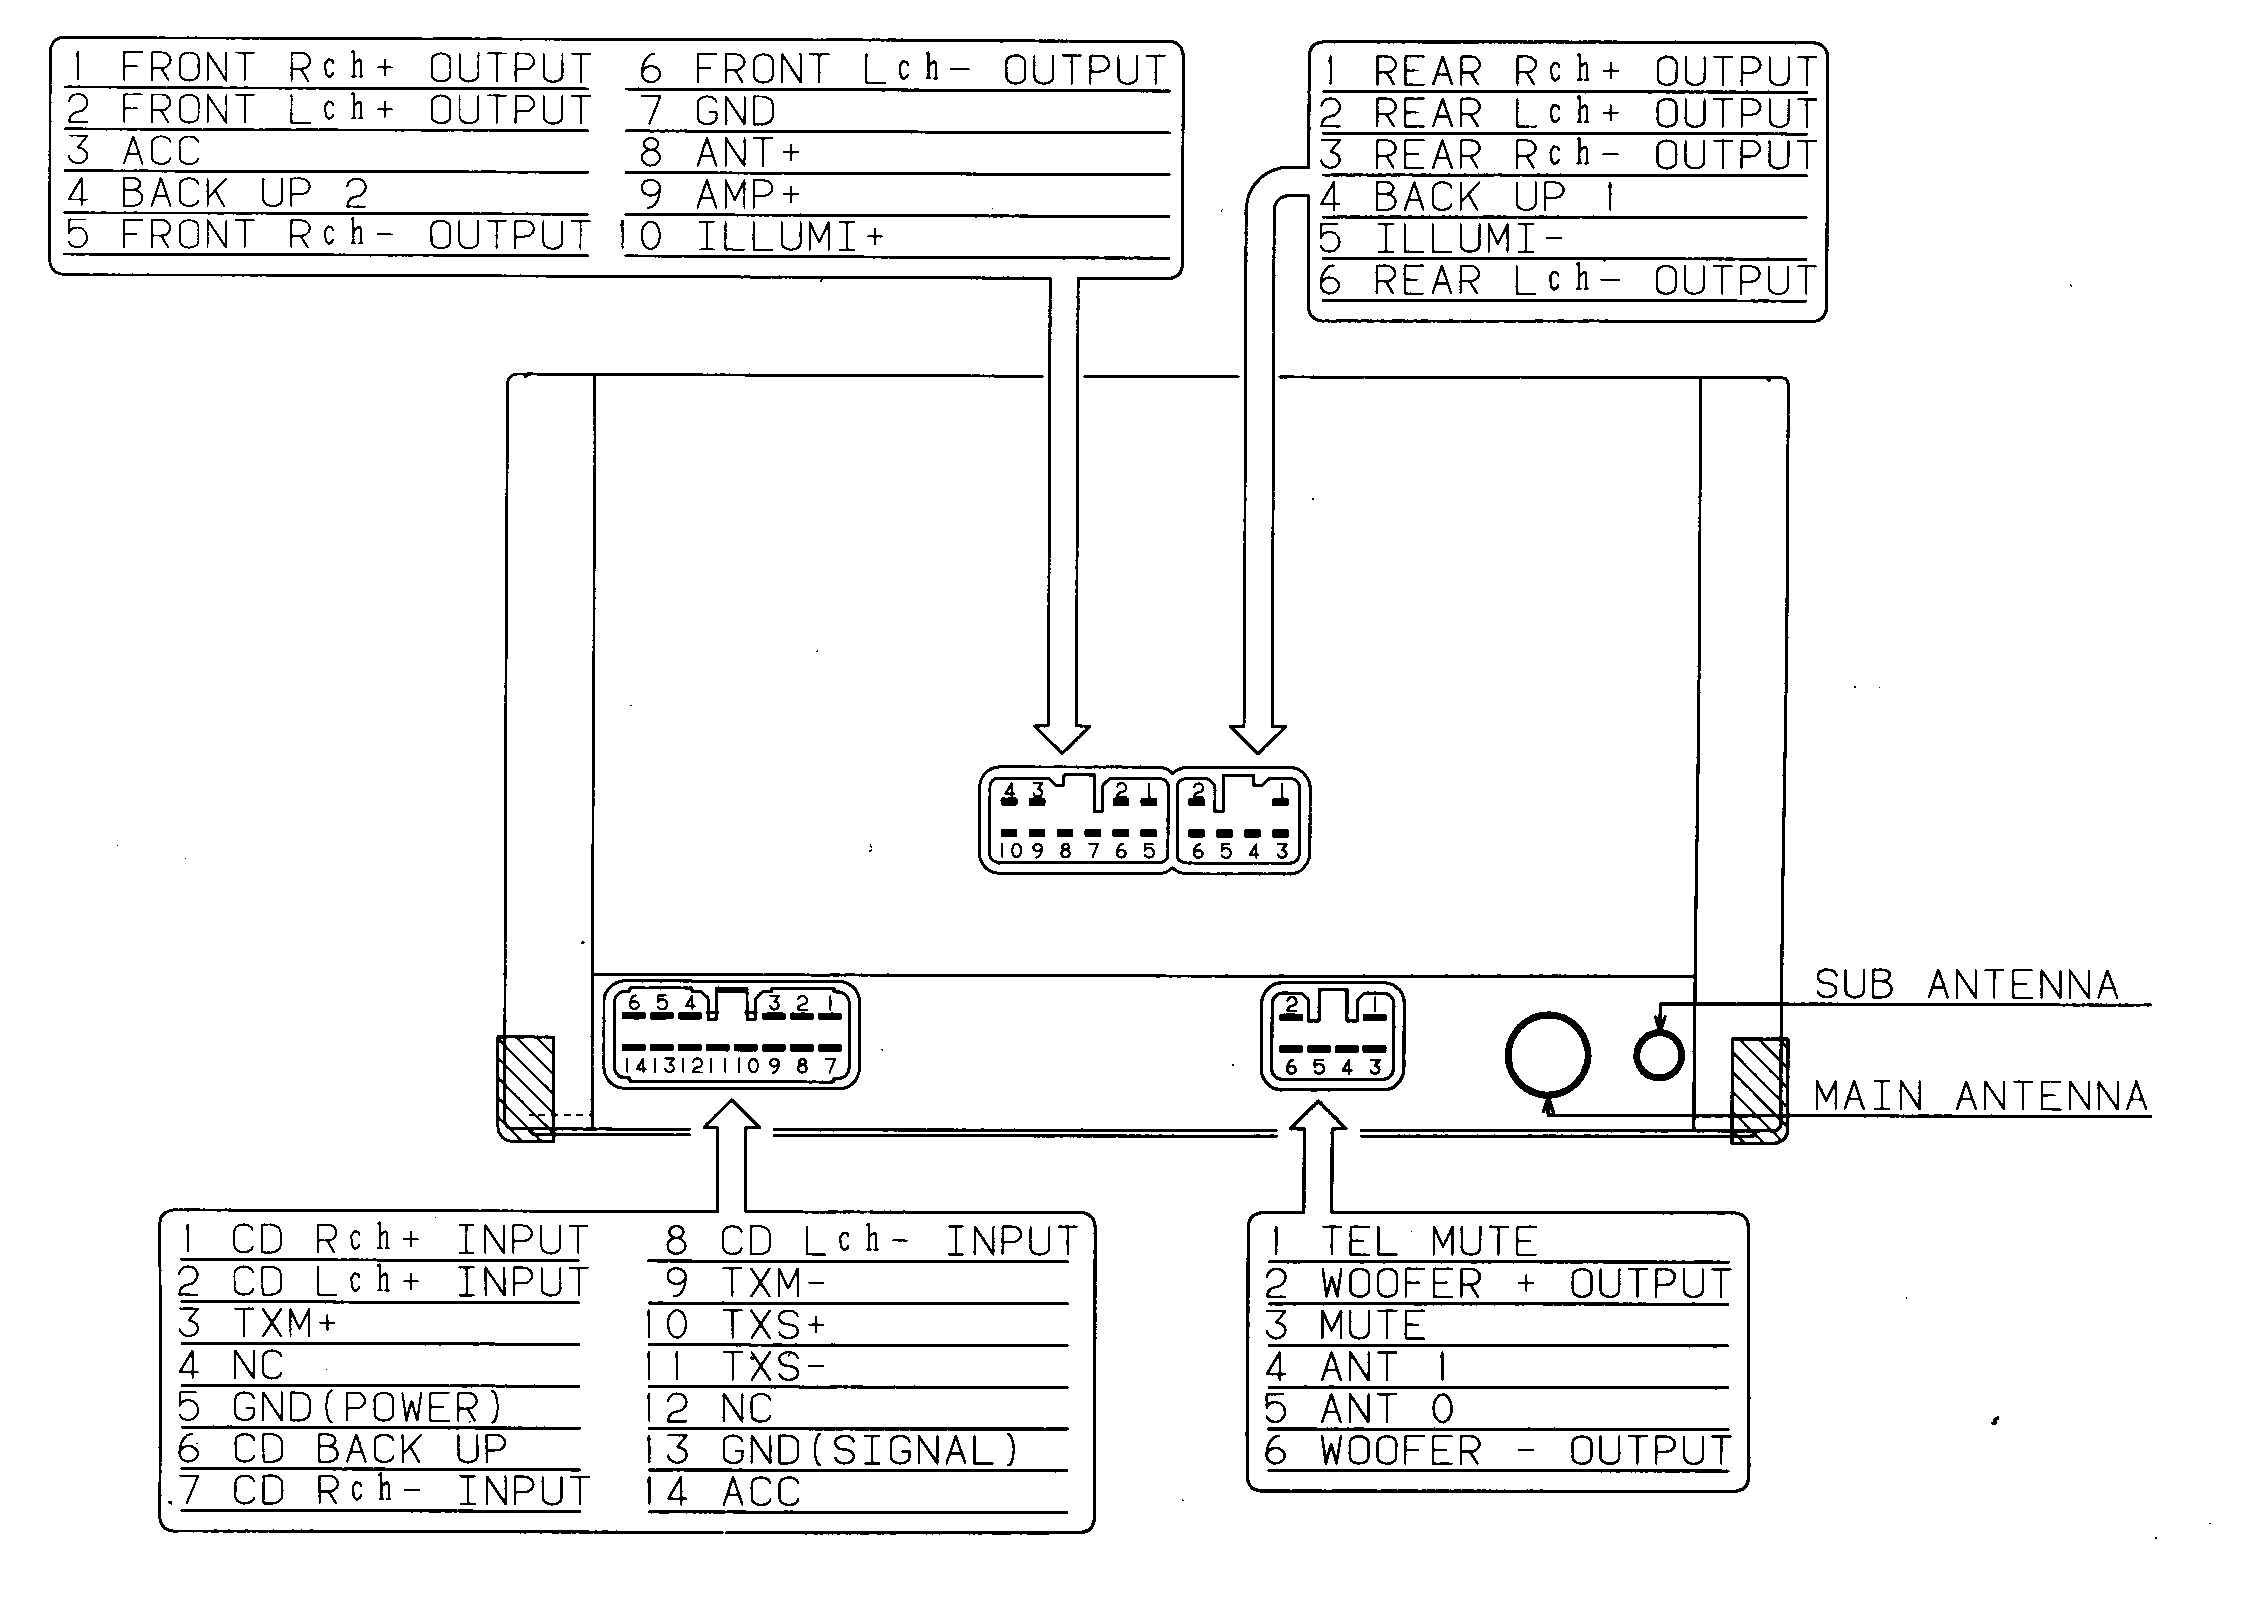 Lexus car stereo wiring diagram harness pinout connector wire nissan almera ecu pinout nissan tps wiring diagram with template Lexus SC300 Engine at cos-gaming.co